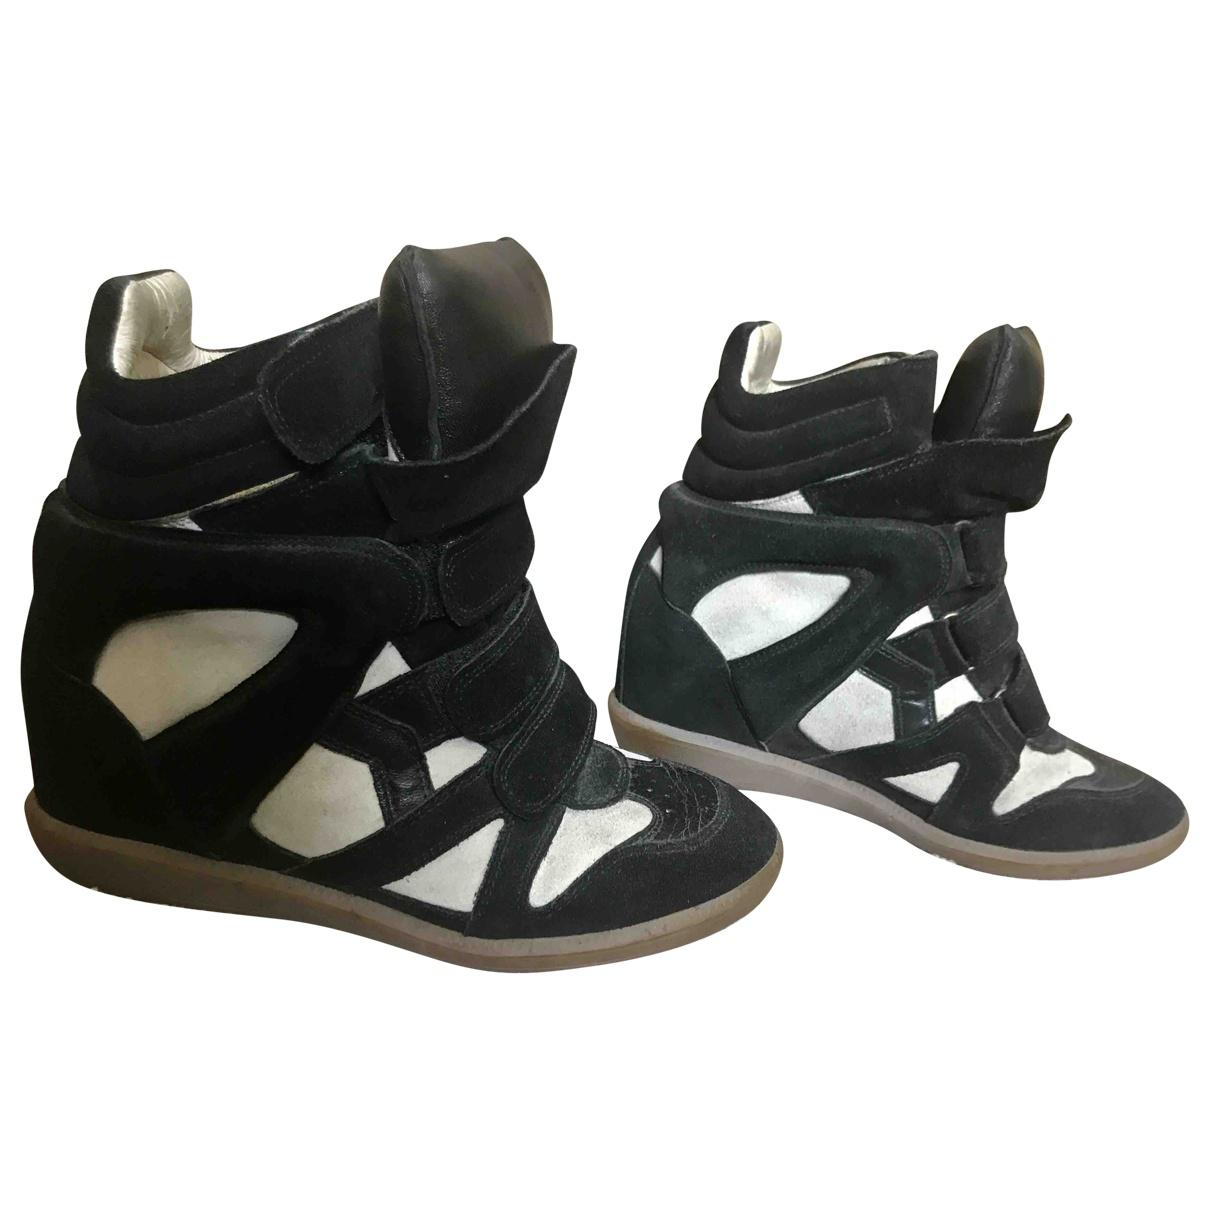 Pre-owned - Leather trainers Isabel Marant sfXC10hr7N